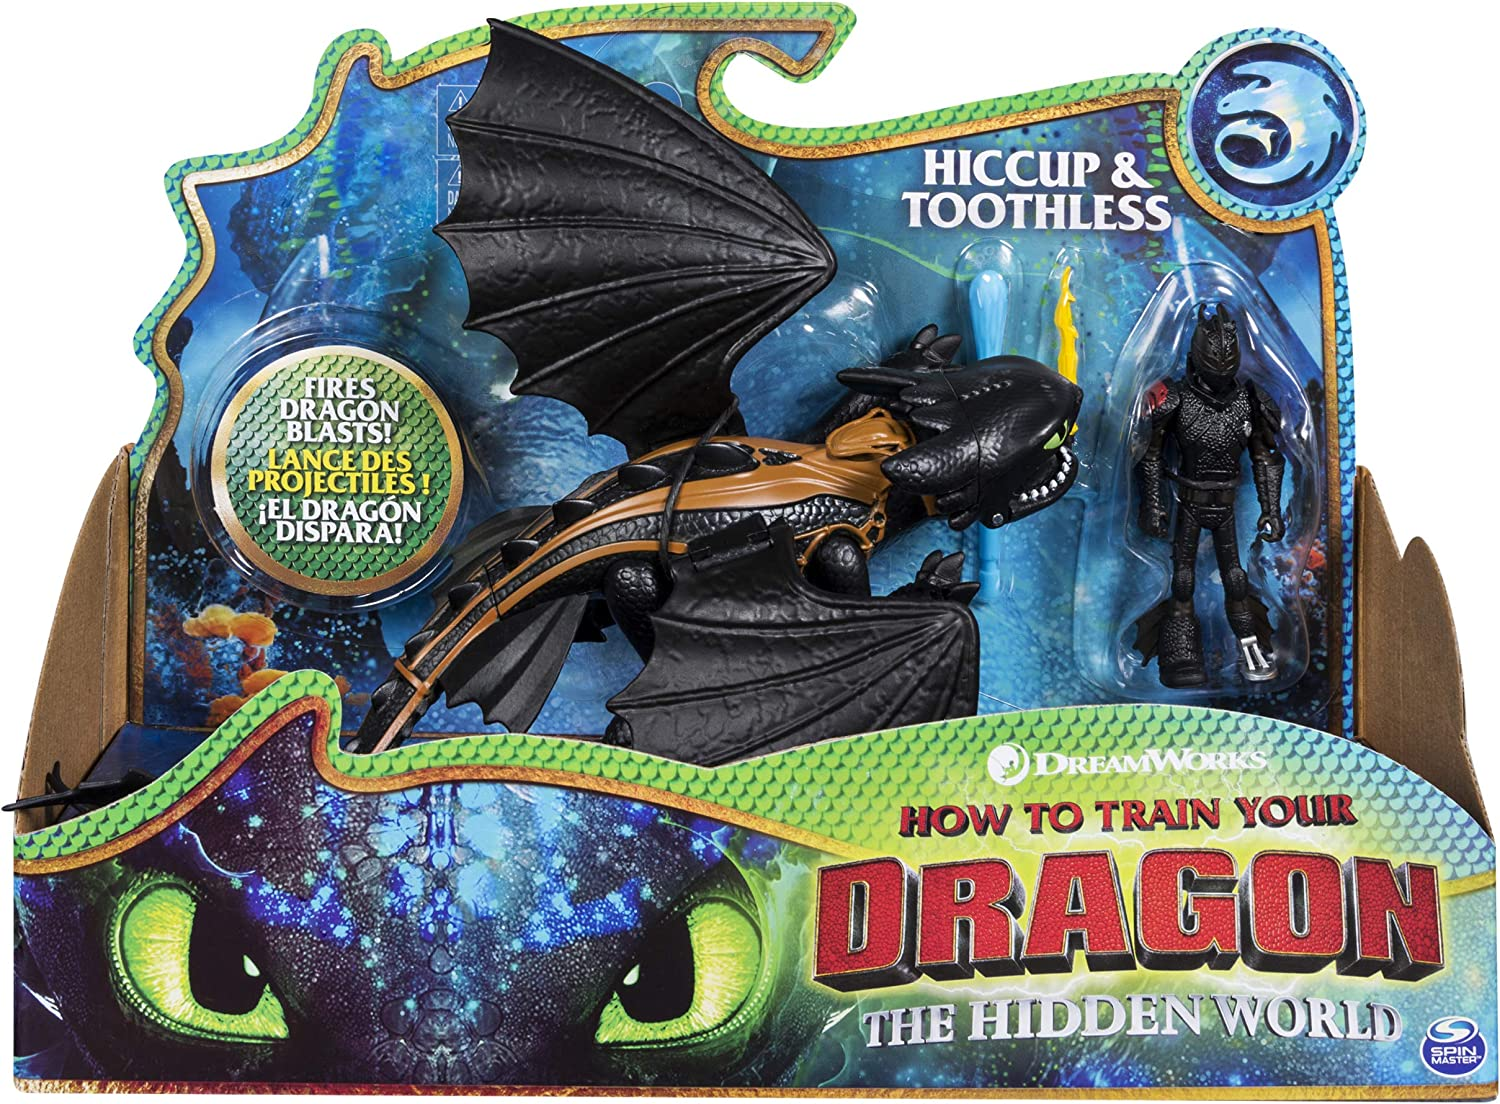 Dragons 6052275 Viking - Figuras de Hiccup sin dientes y colores mezclados , color/modelo surtido